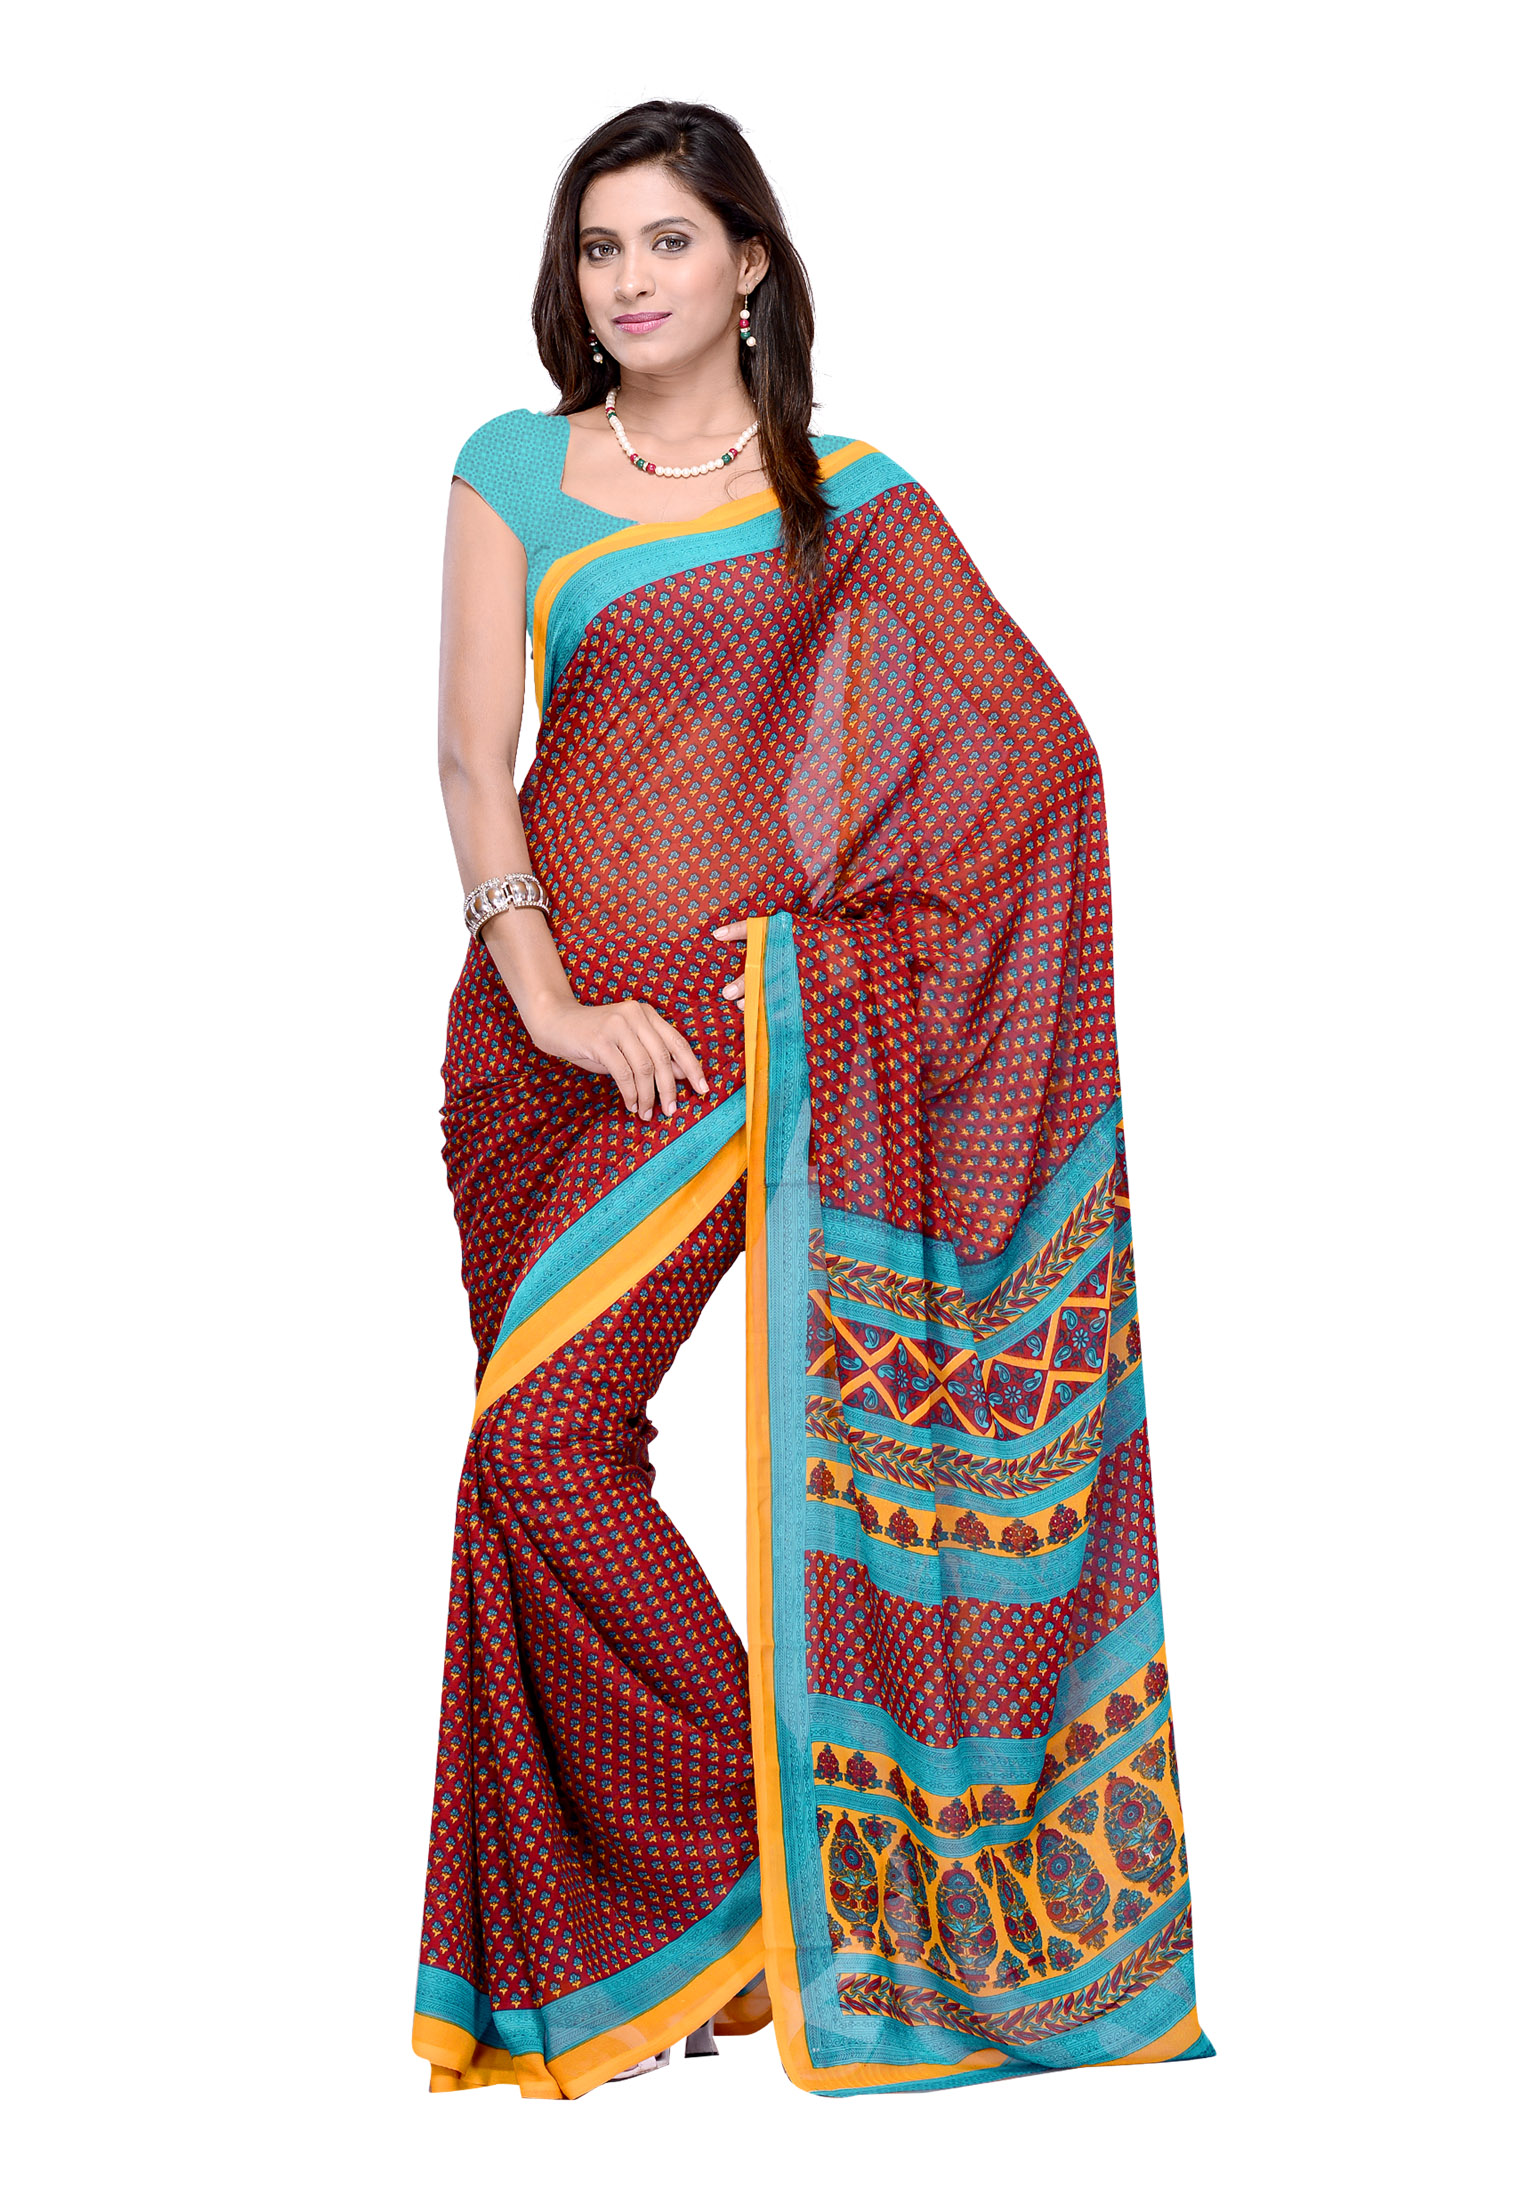 Fantastic All These Indian Fancy Frock Fashion Contains Anakrali Umbrella Frocks